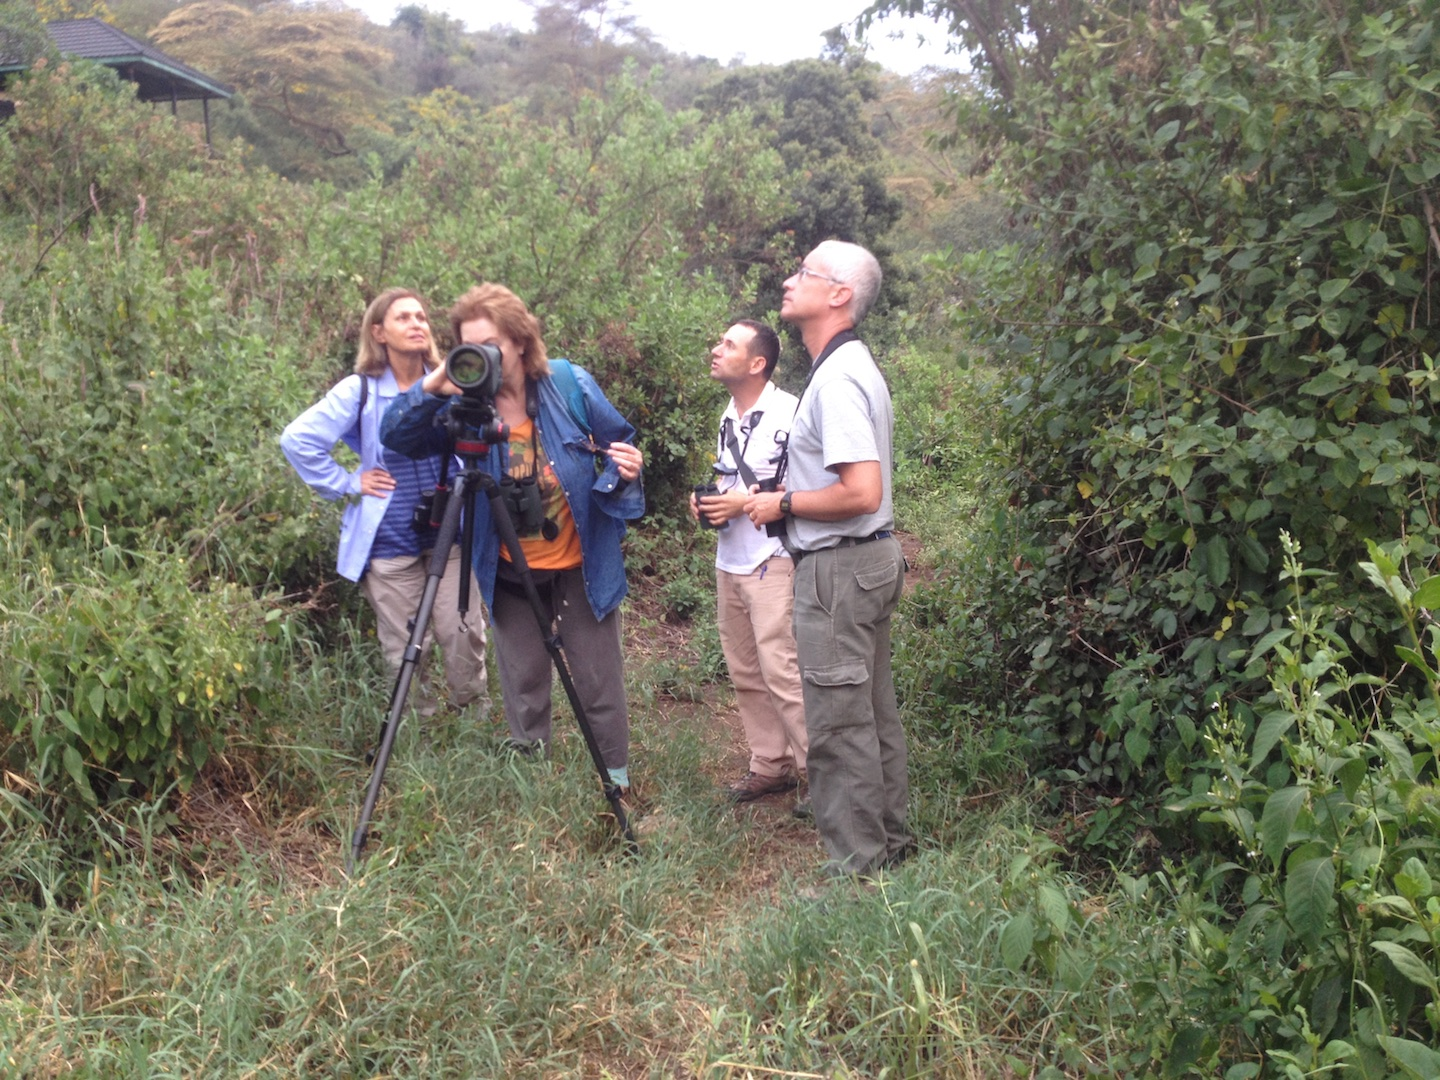 Israeli birders led YUVAL DAX, a bird guide and nature videographer. This was during the first trip to Kenya in September 2017. More about https://www.youtube.com/watch?v=jB6Qxu2WQXA